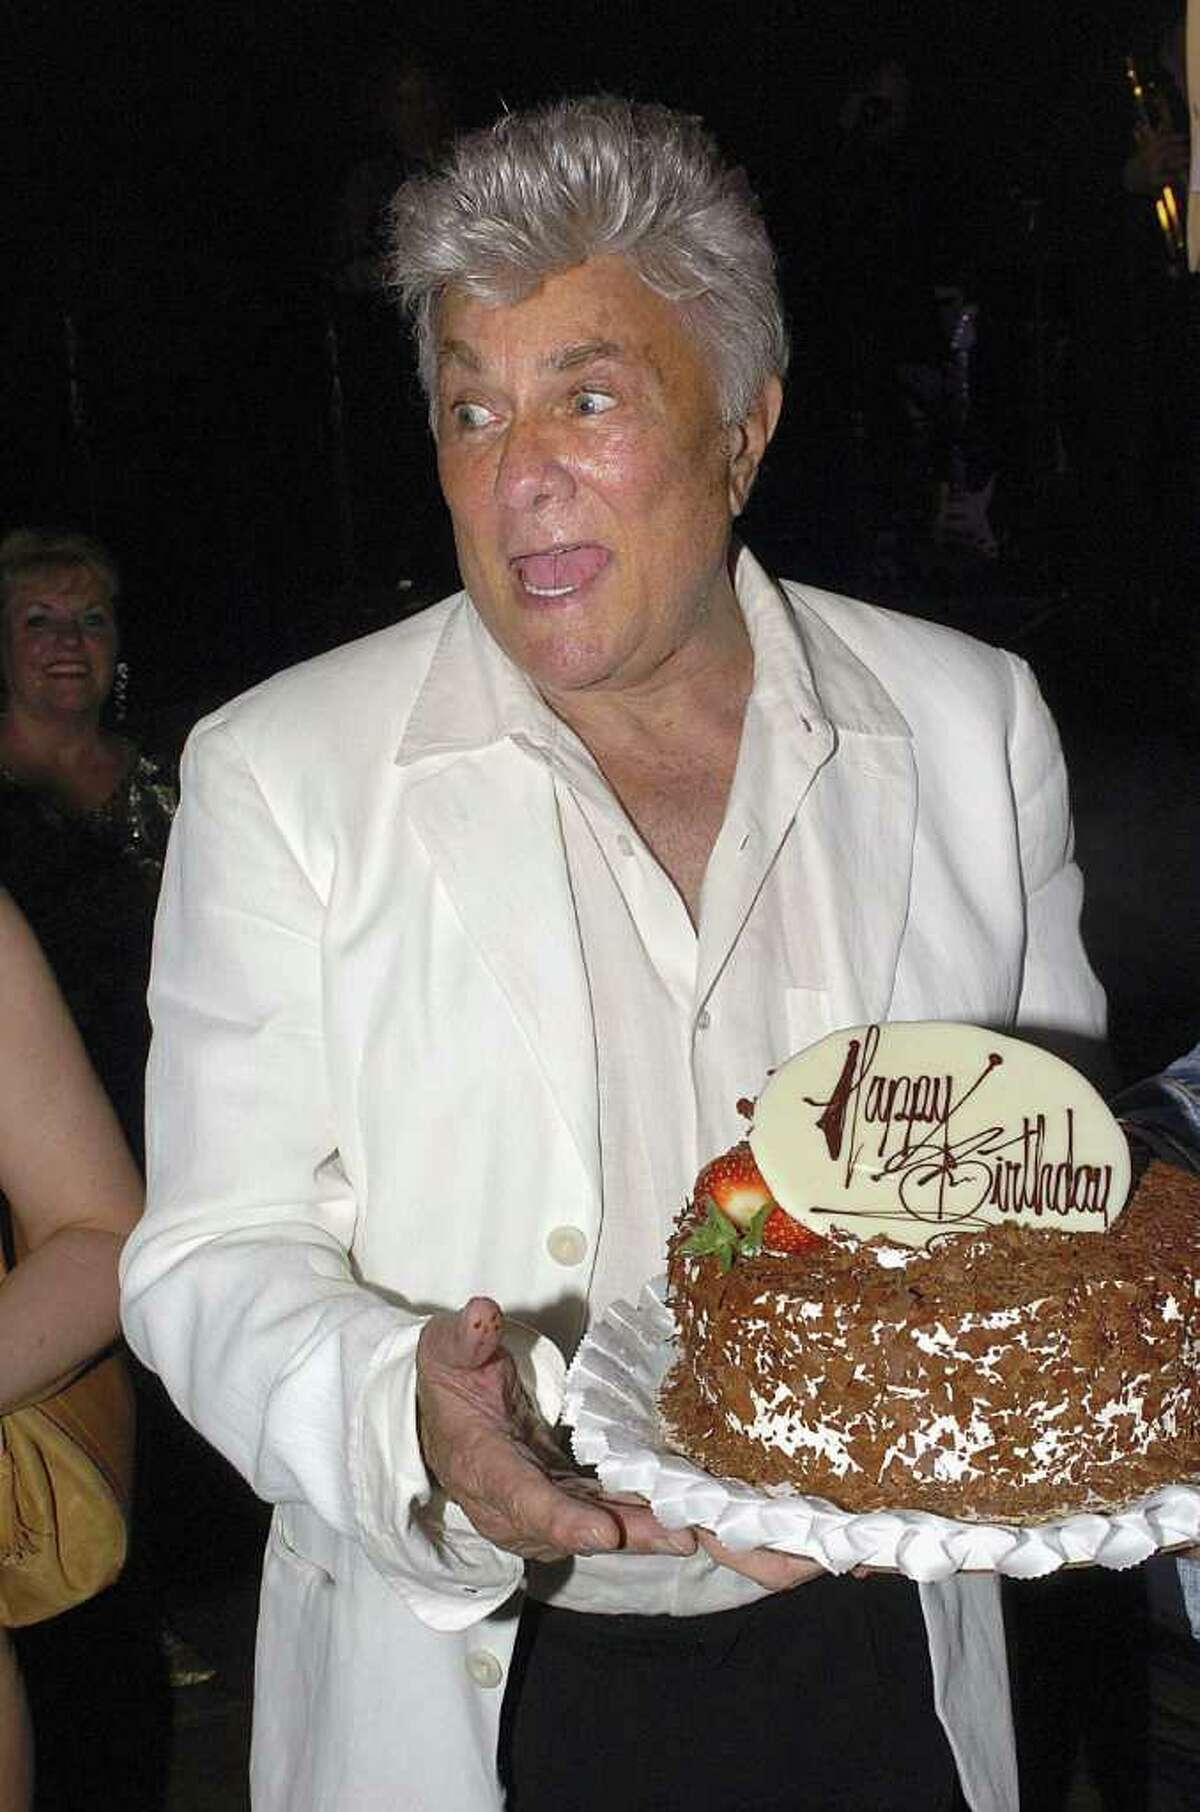 LAS VEGAS, NV - JUNE 15: Actor Tony Curtis holds his birthday cake at the Viva Las Vegas Party during Cinevegas 2005, at the Palms Casino on June 15, 2005 in Las Vegas, Nevada. (Bryan Haraway/Getty Images) *** Local Caption *** Tony Curtis